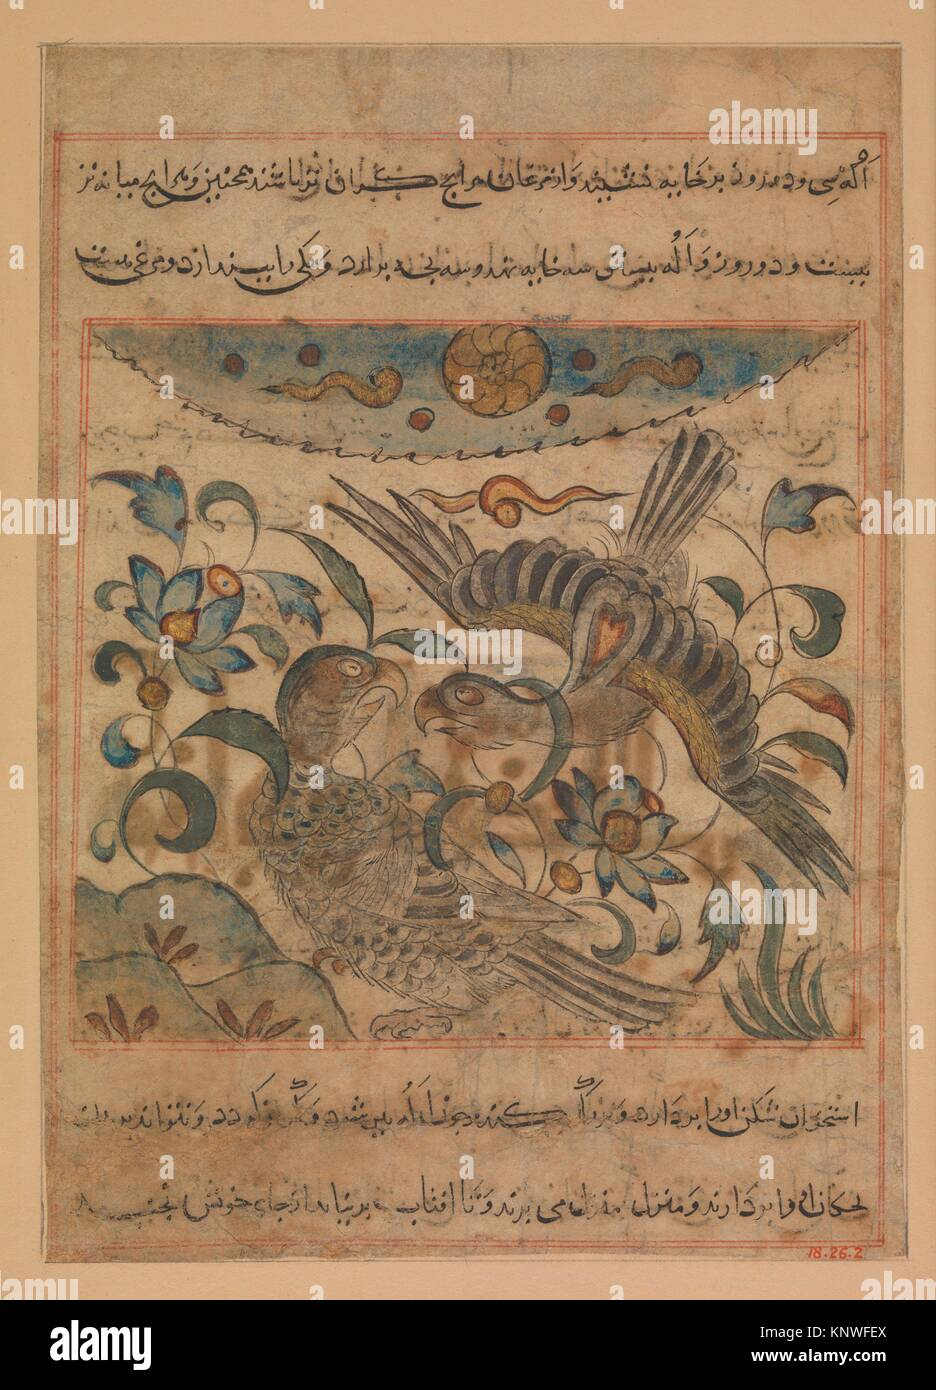 Pair of Eagles, Folio from a Manafi' al-Hayawan (On the Usefulness of Animals) of Ibn Bakhtishu'. Author: - Stock Image